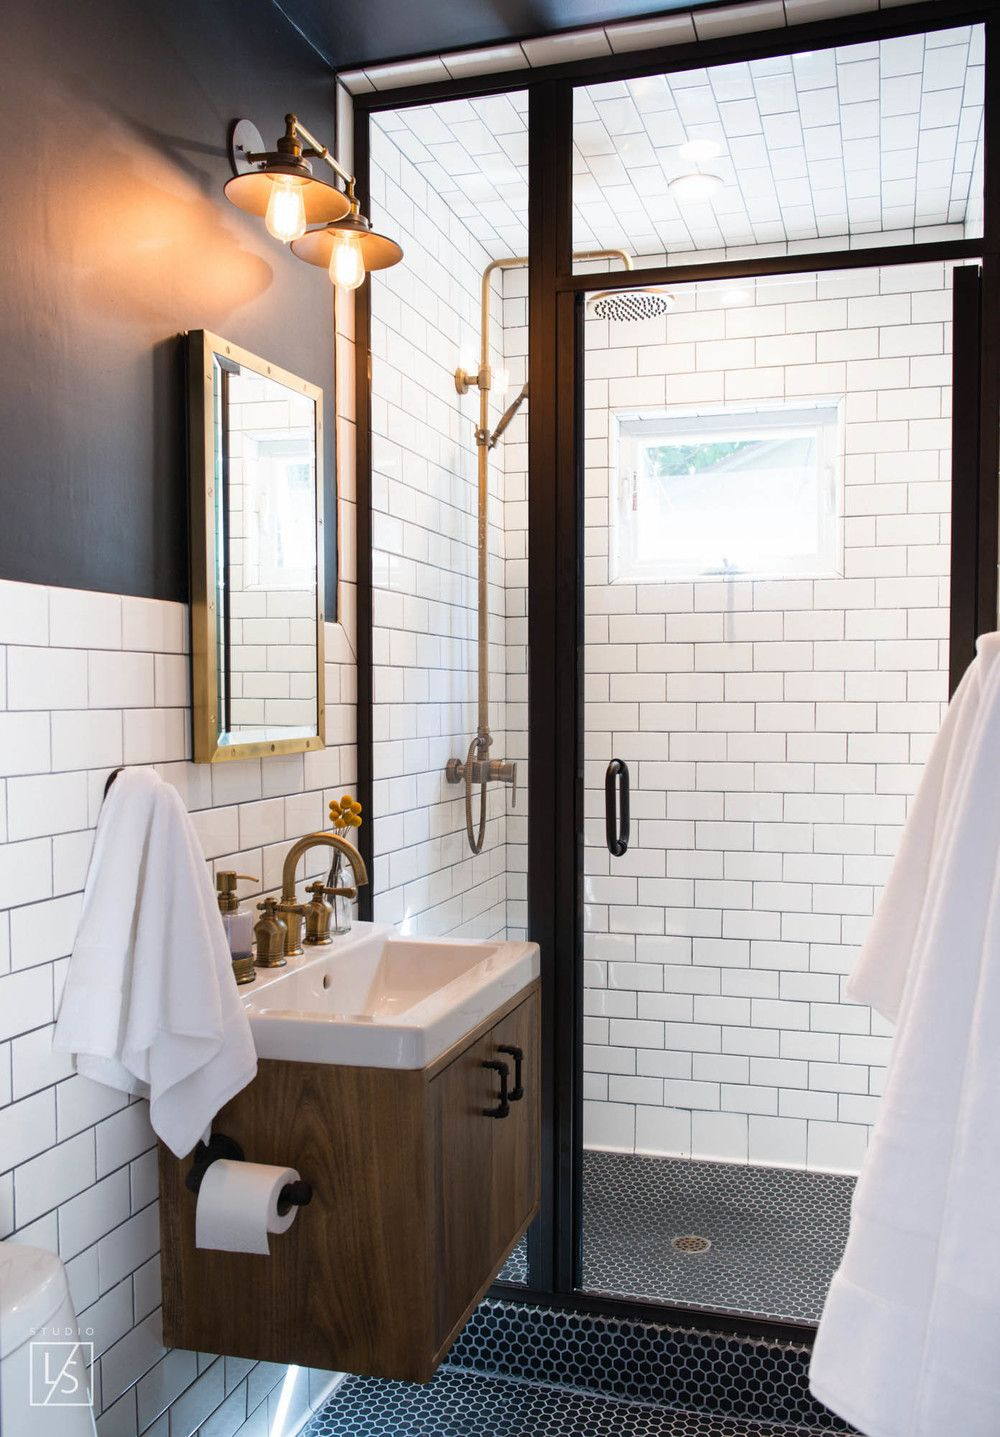 Small bath with a shower stall   Bath, Sinks and White tiles